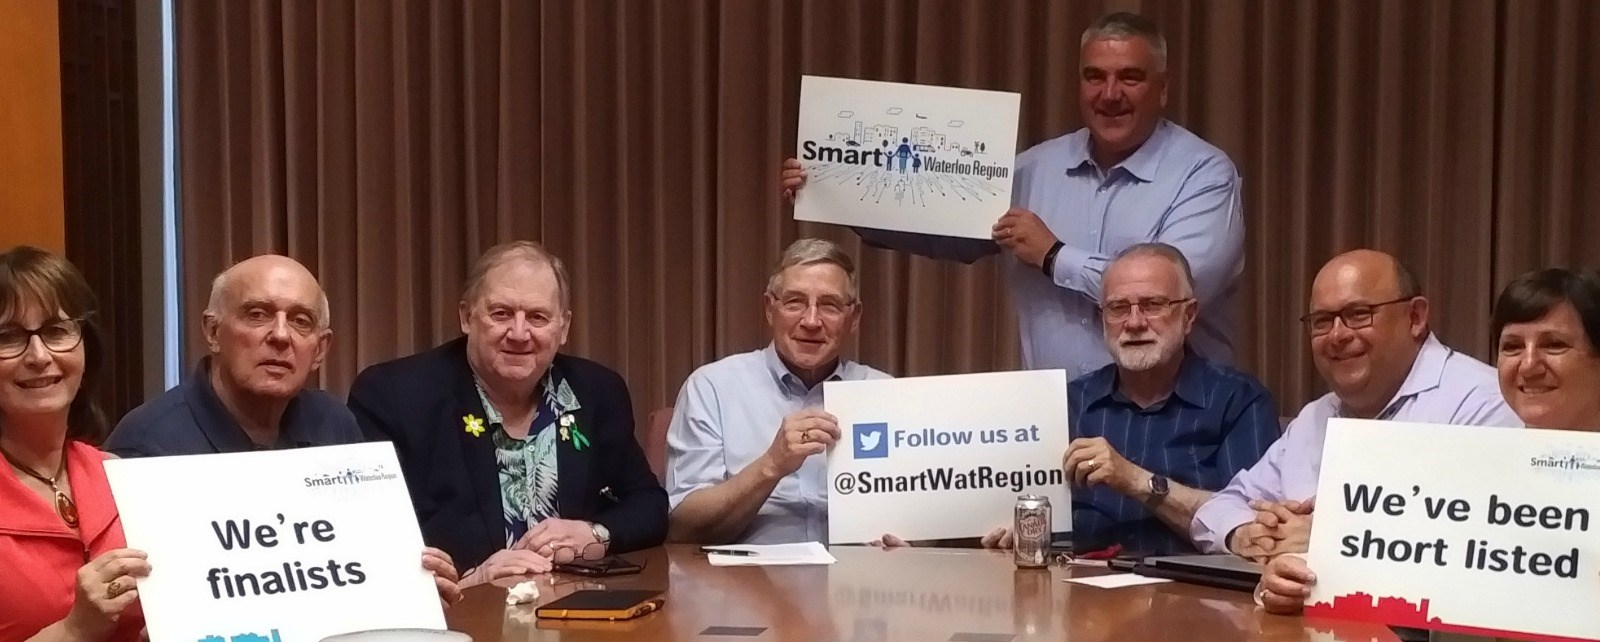 Waterloo region Mayors announce our place on the Smartcities shortlist